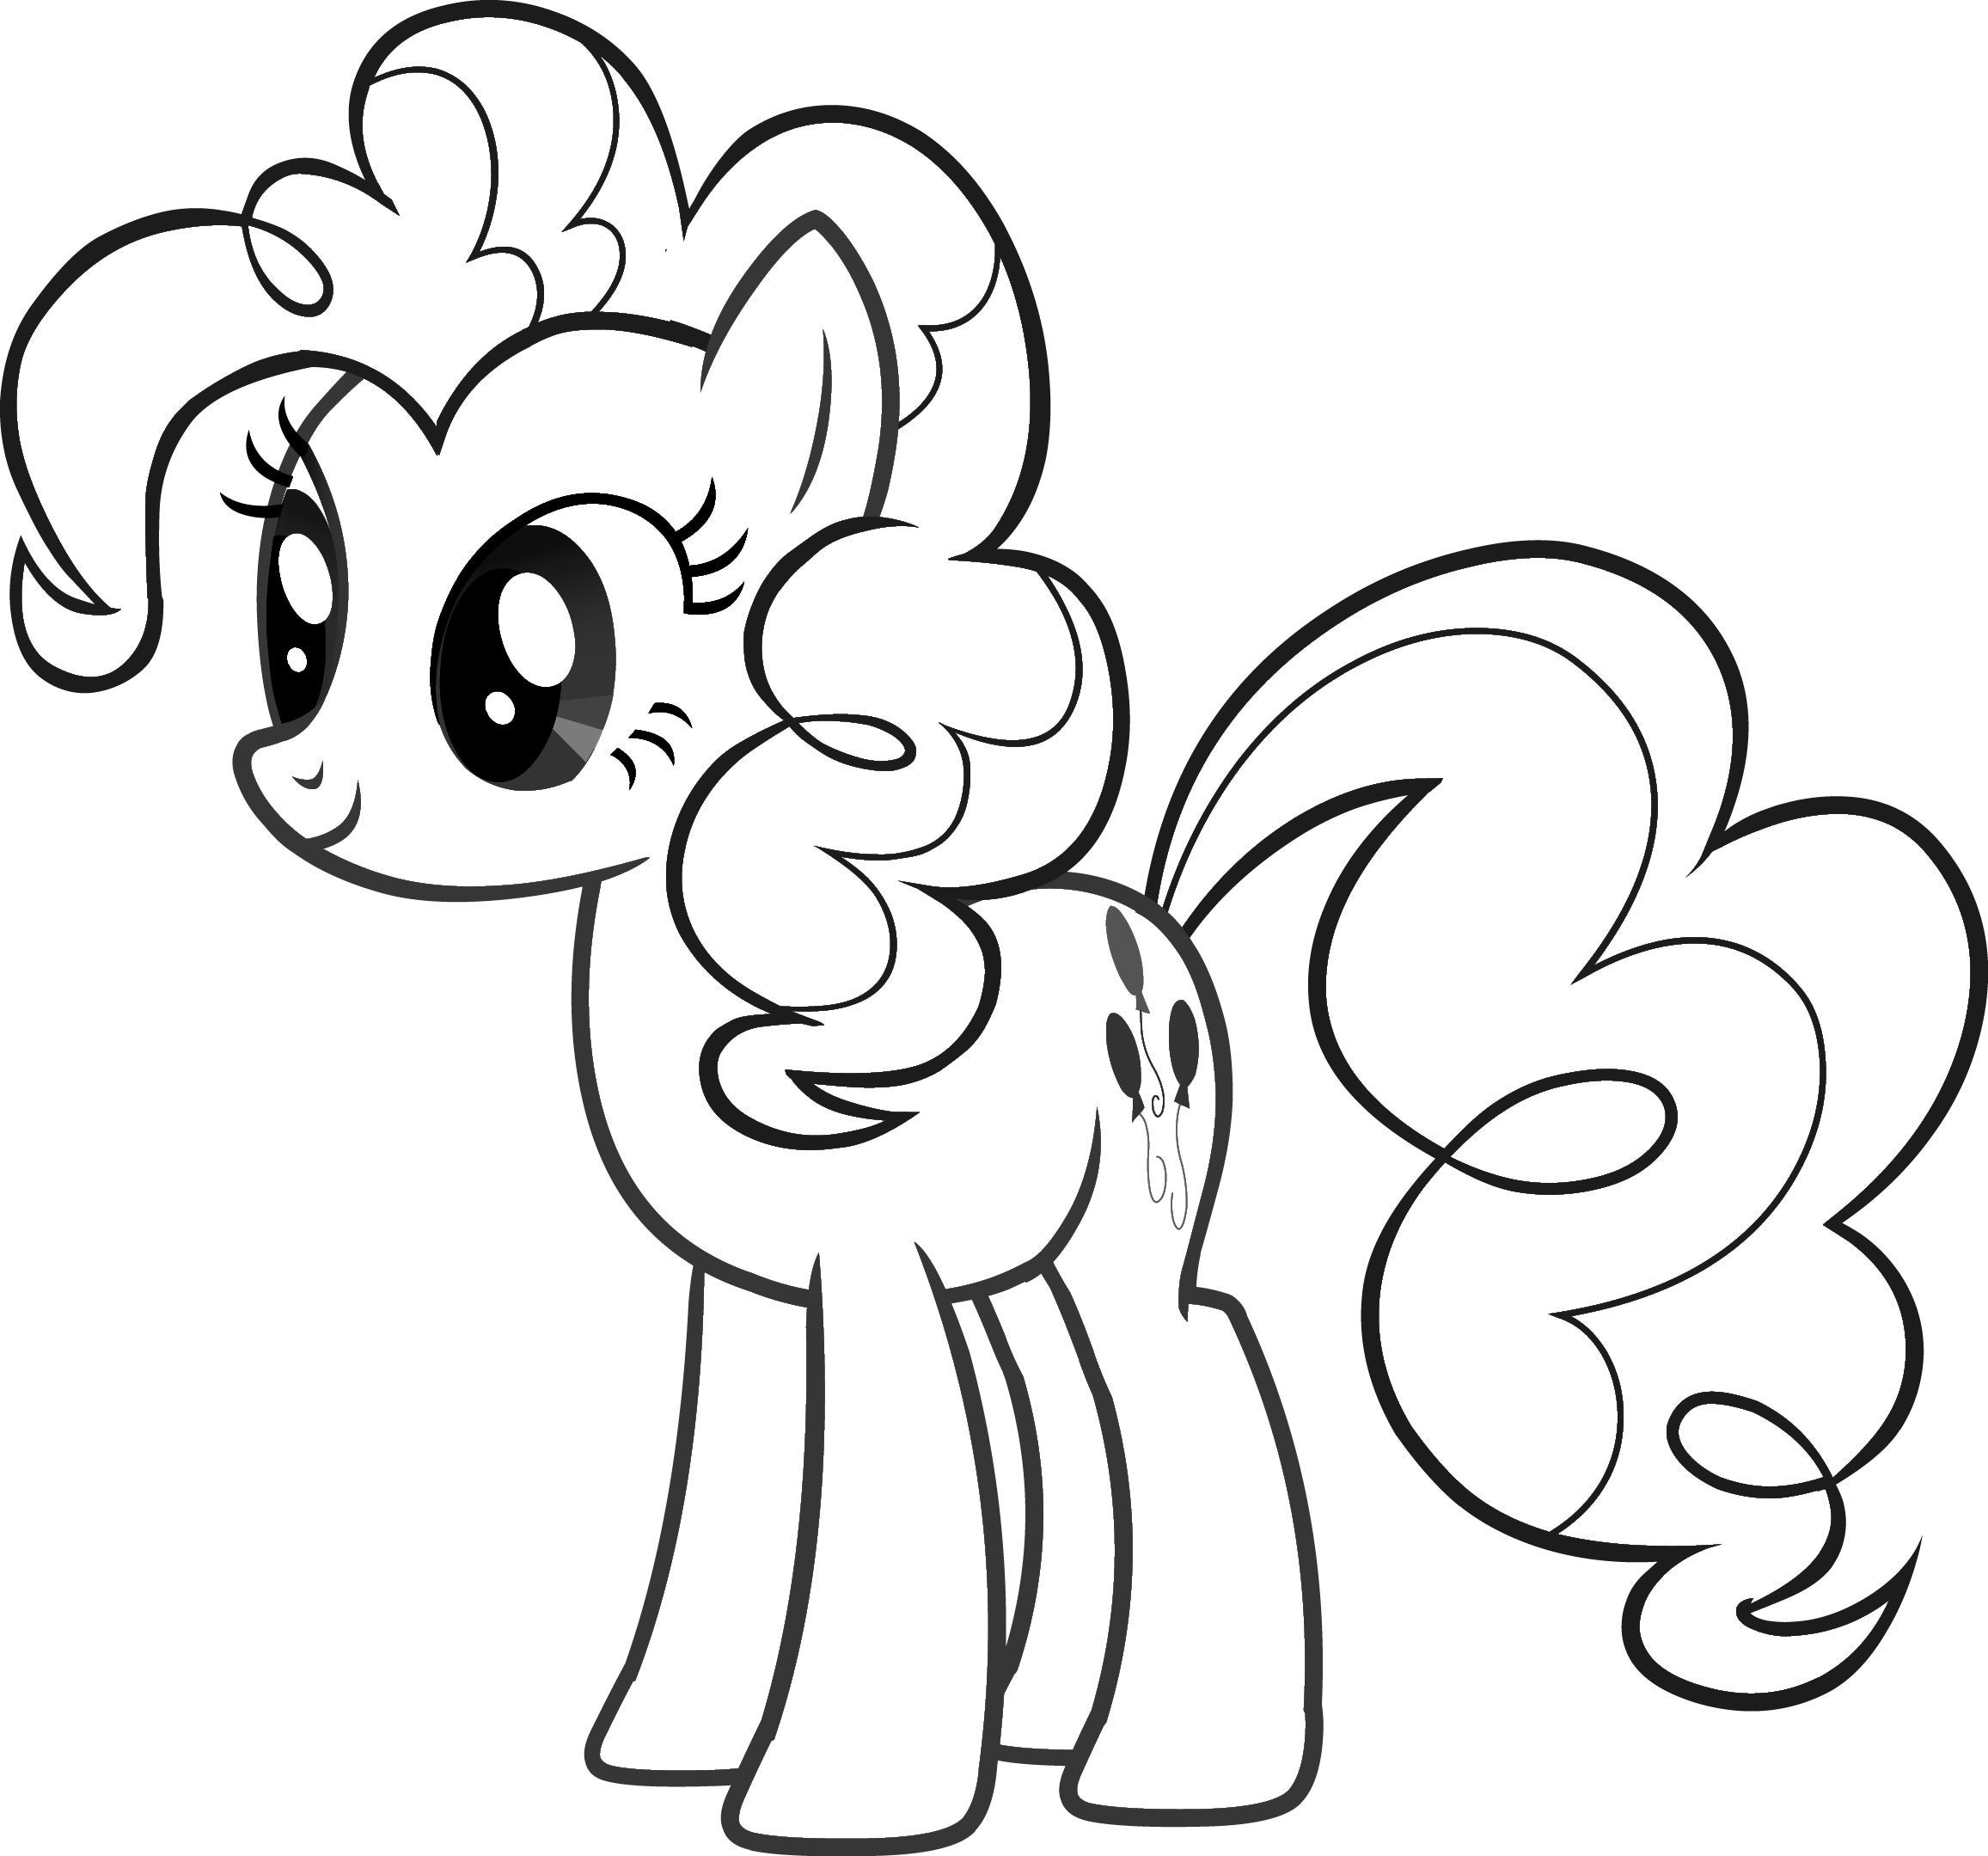 Coloring Pages For Kids Coloring Pages For Kids Coloringpages Coloring Coloringbook Unicorn Coloring Pages My Little Pony Coloring My Little Pony Printable